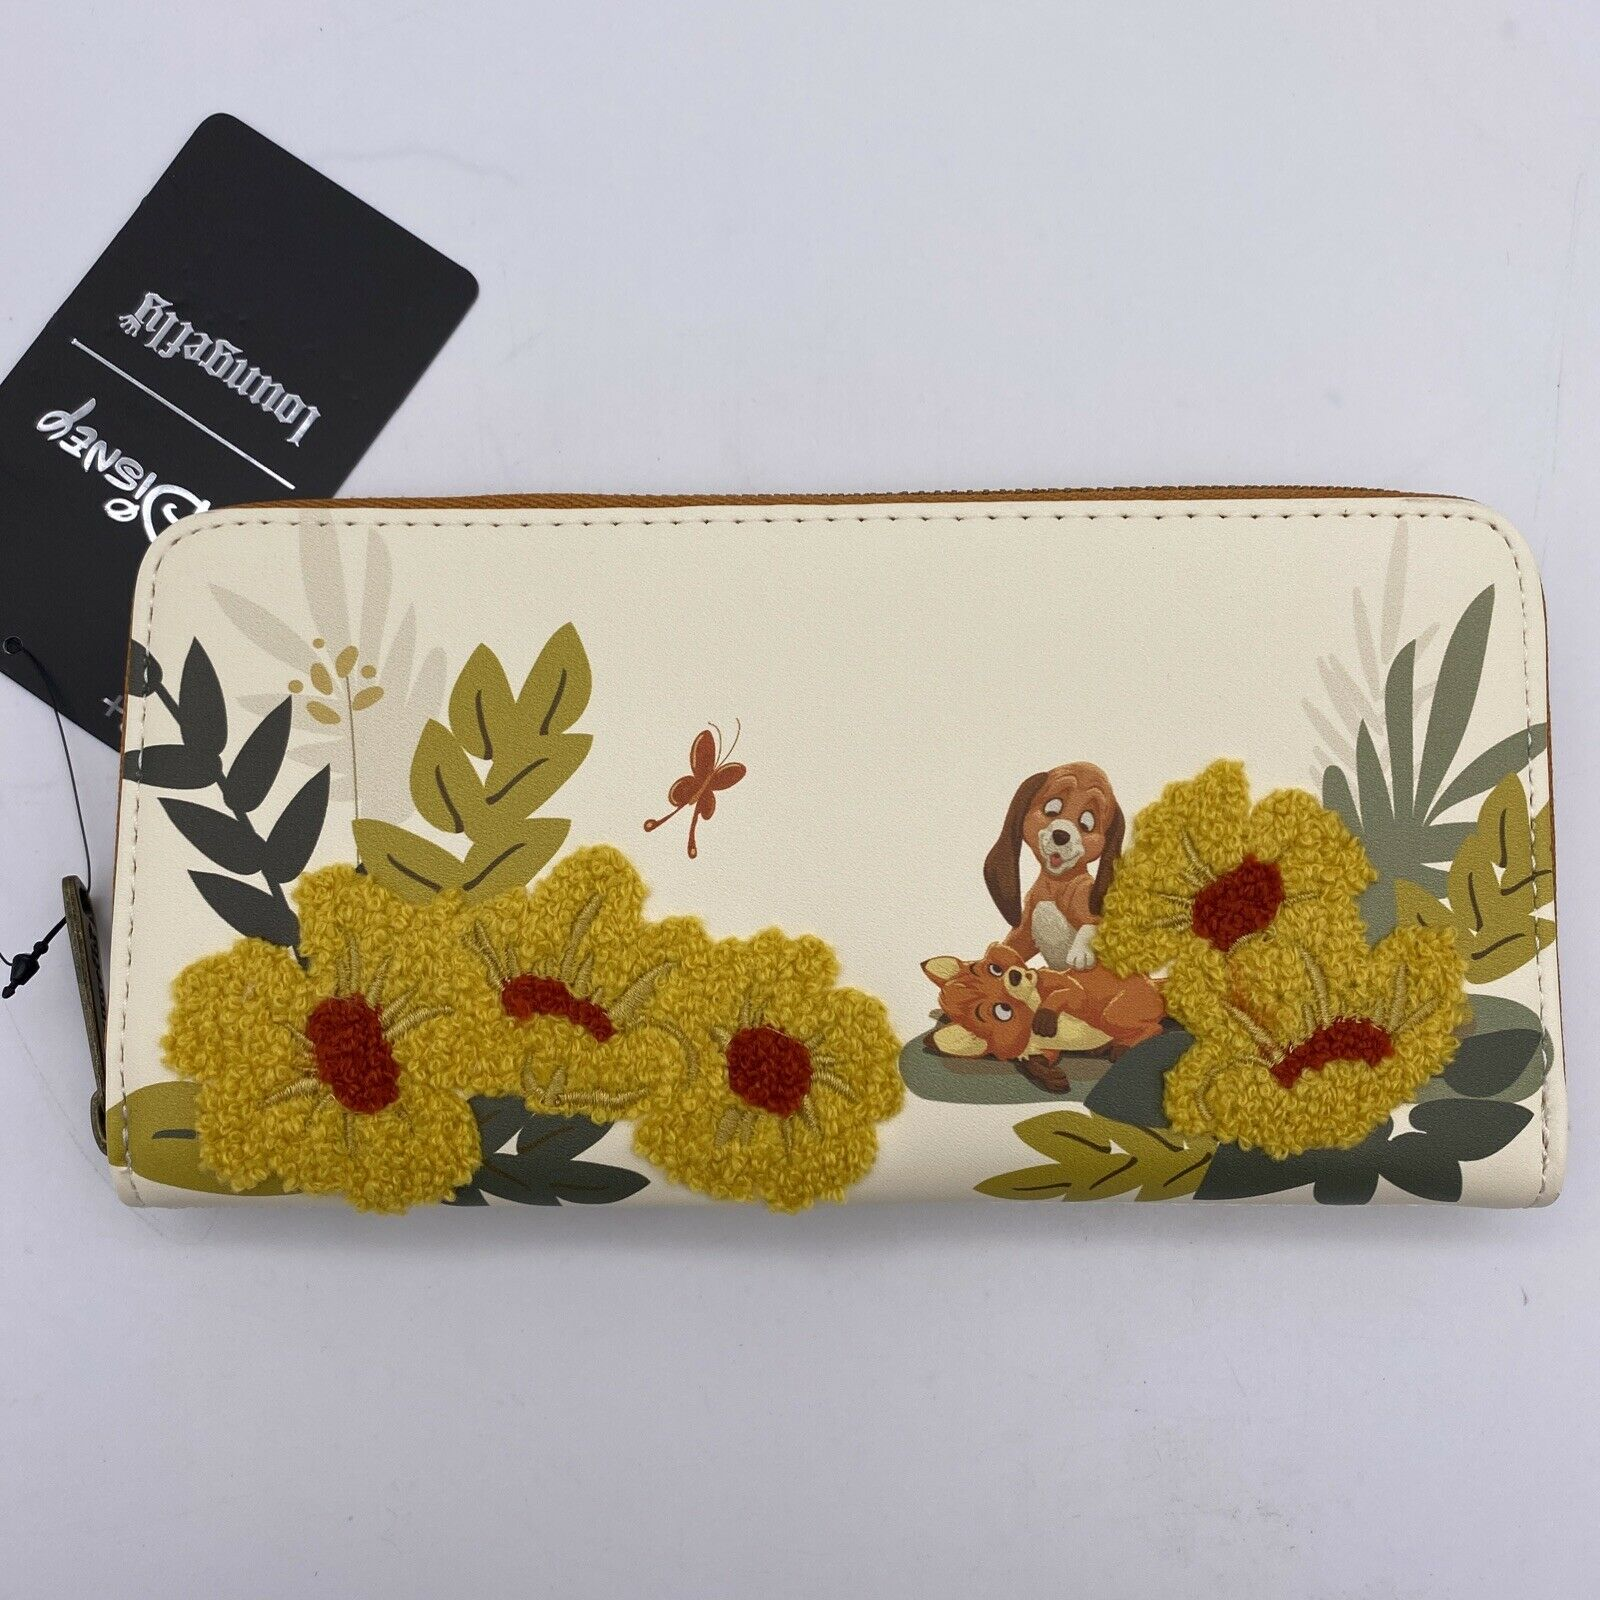 Loungefly Disney Wallet The Fox and the Hound Floral Zip Clutch